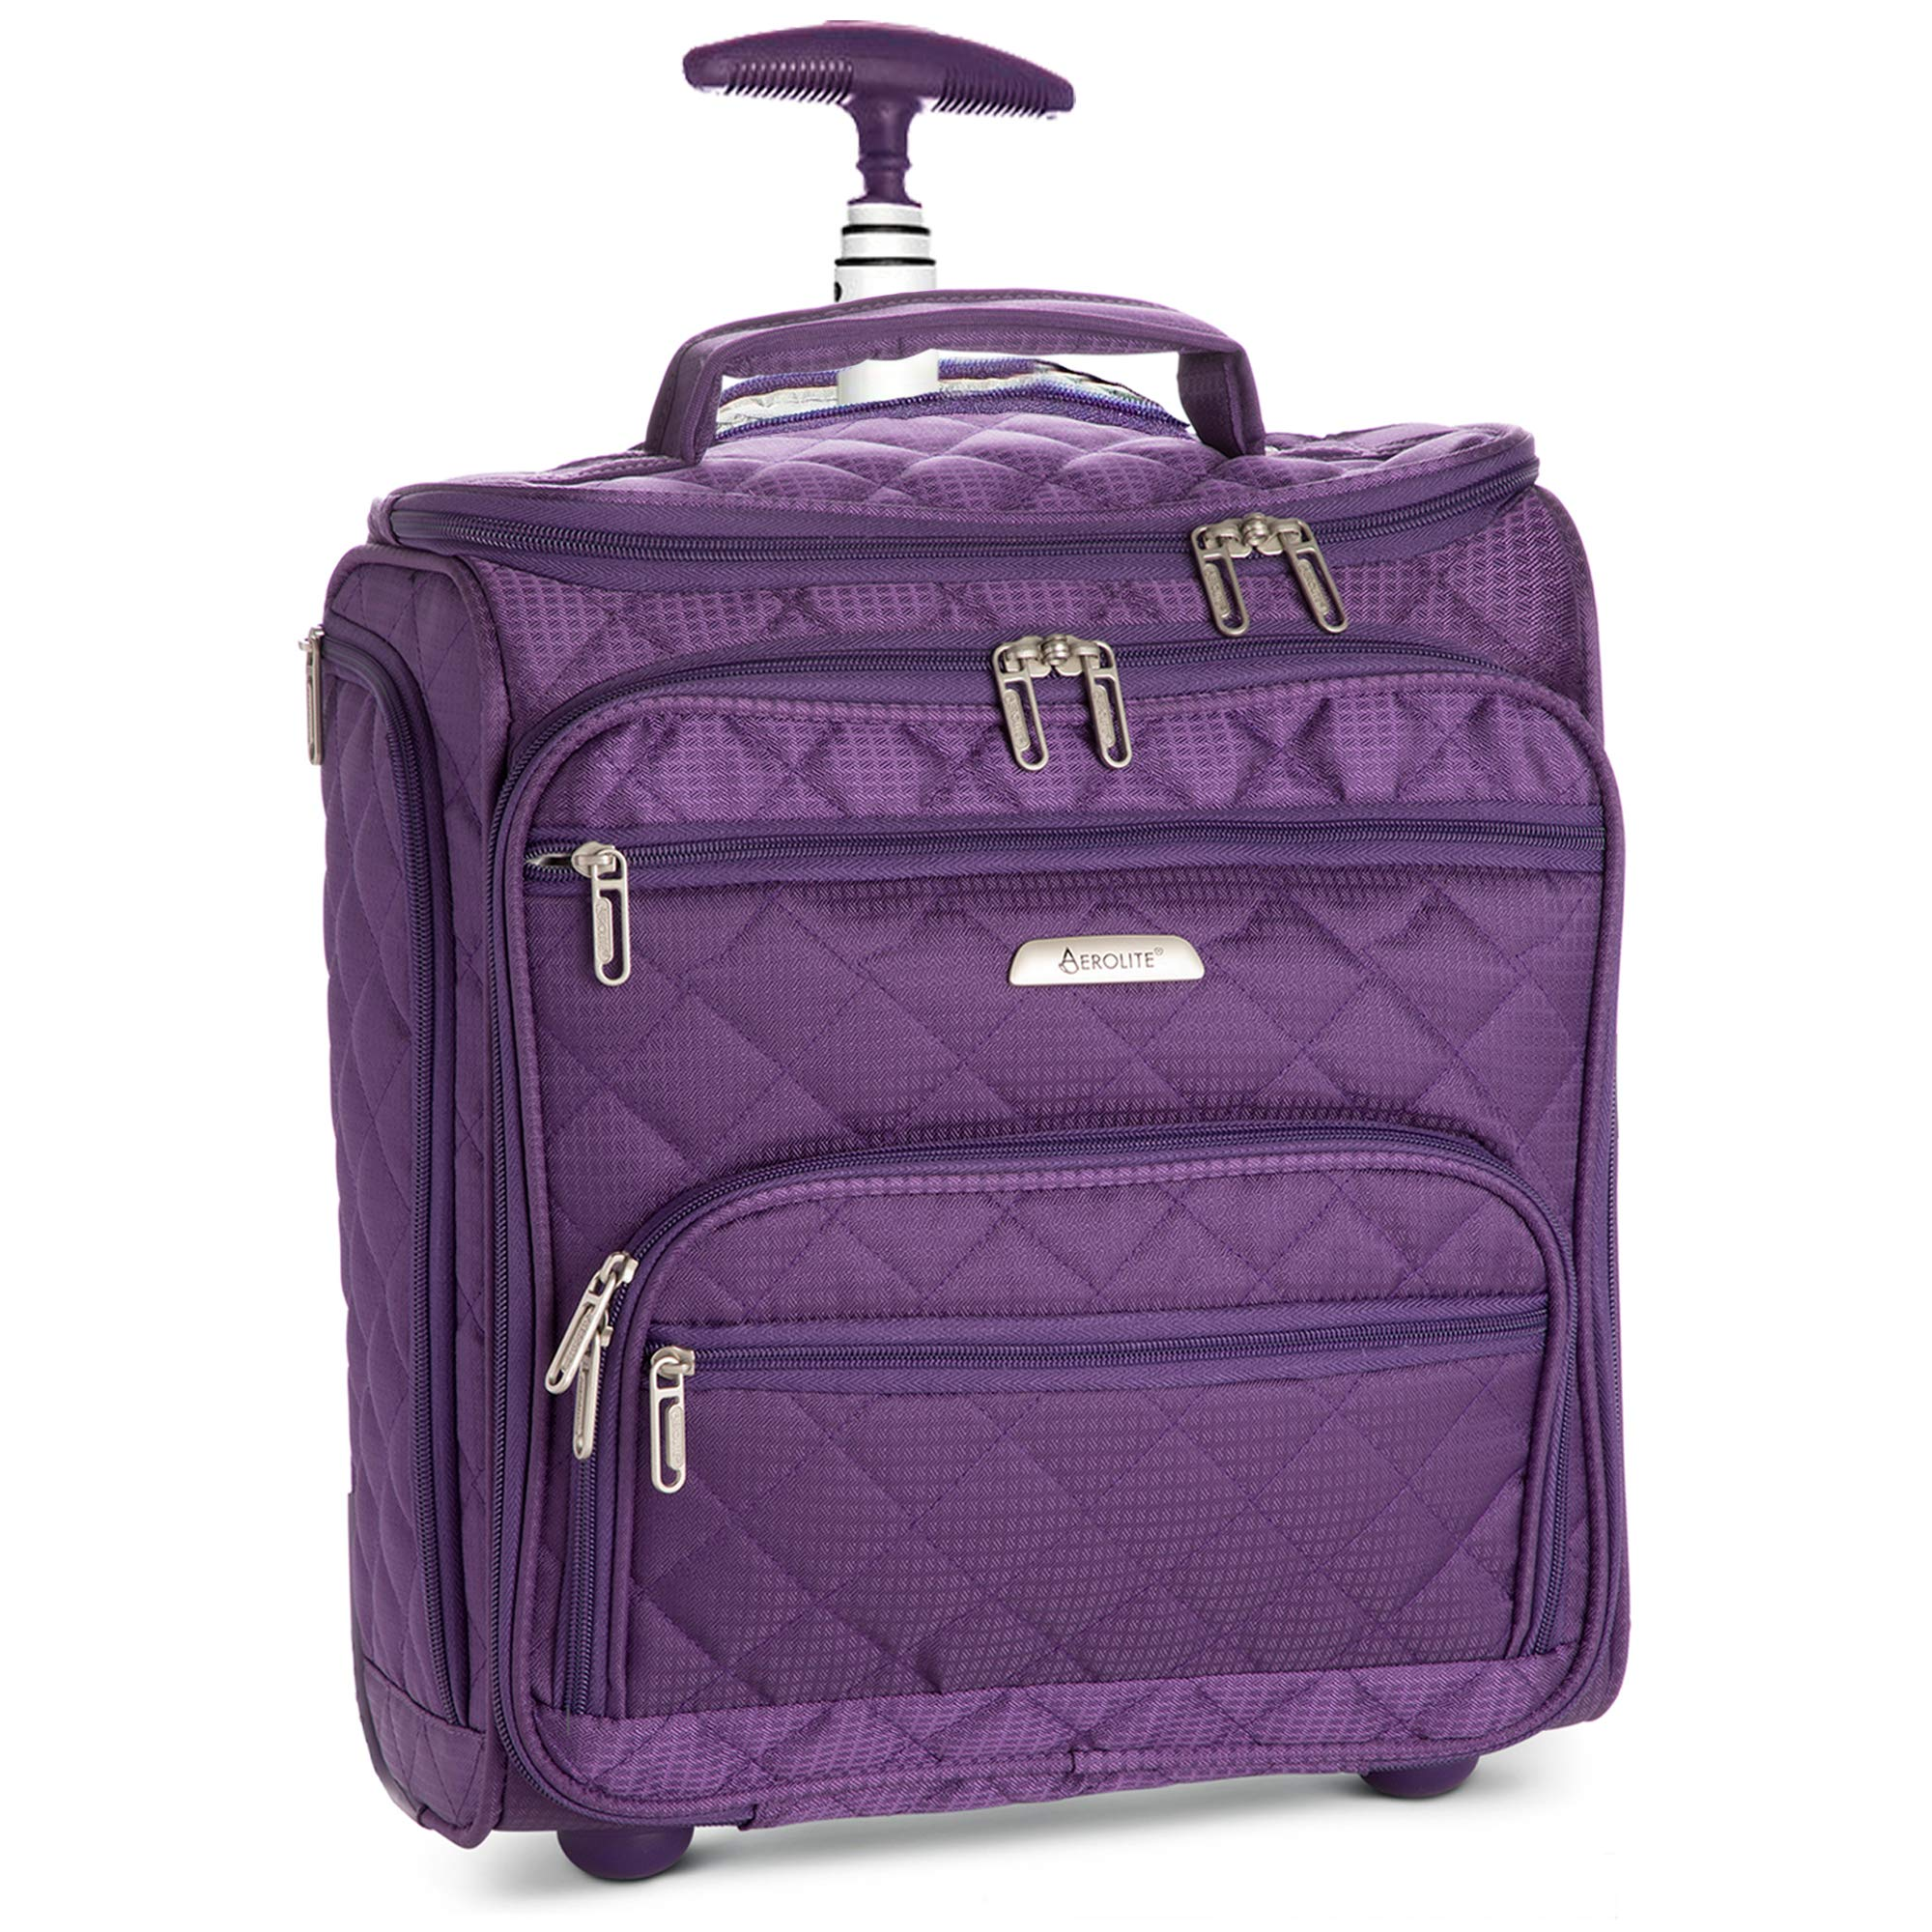 16.5'' Underseat Women Luggage Carry On Suitcase - Small Rolling Tote Bag with Wheels (Purple)